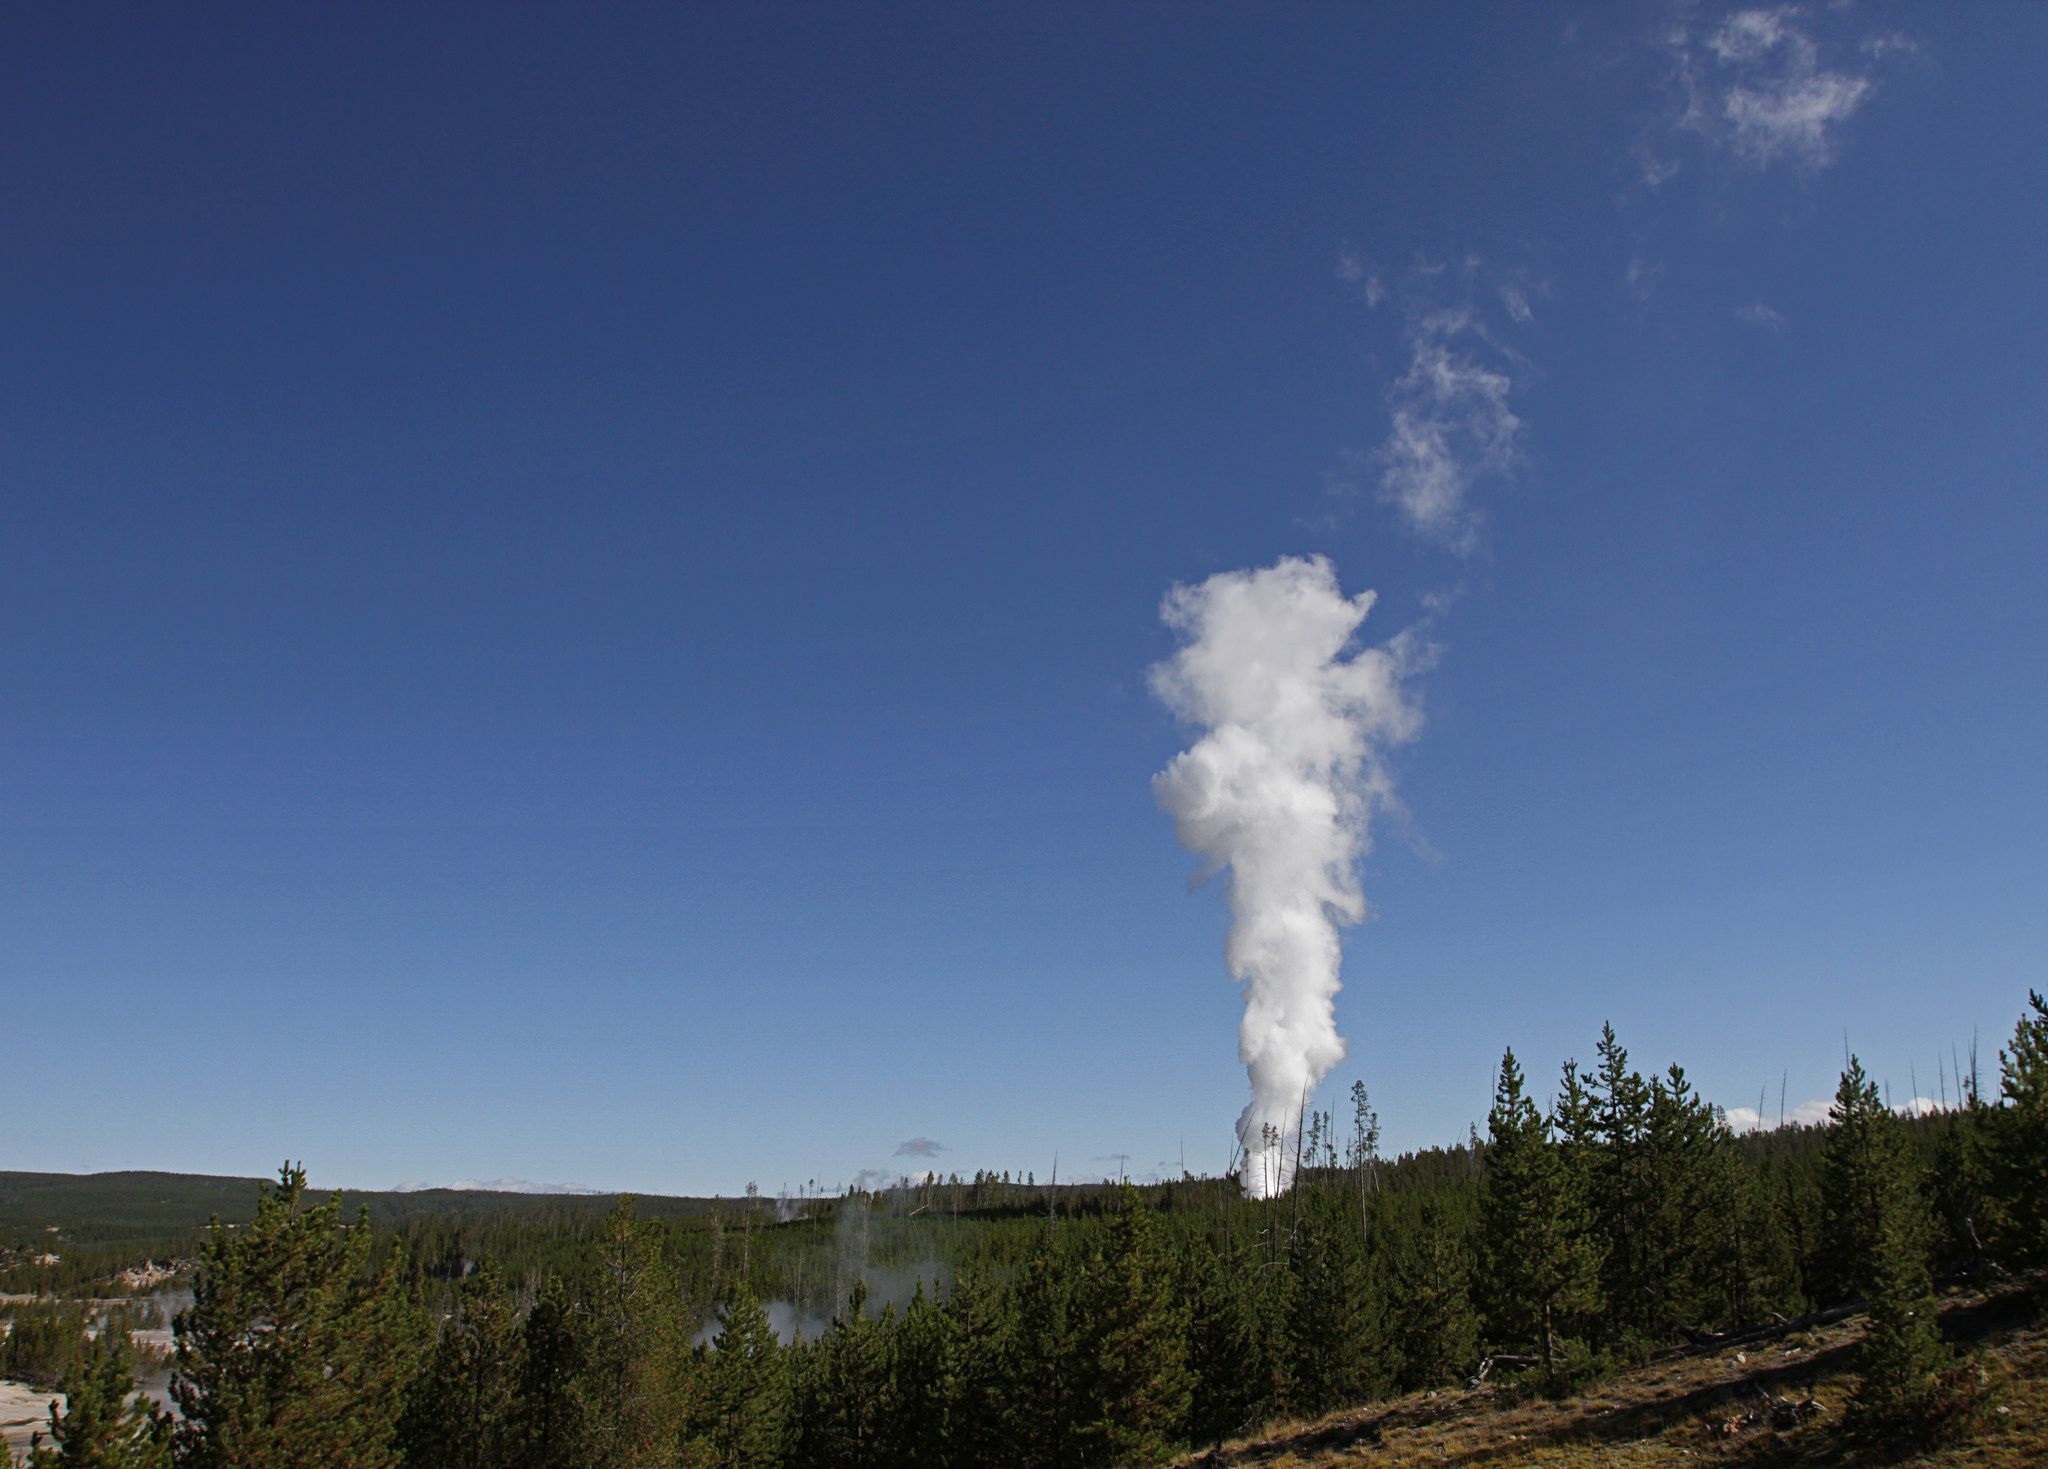 03_19_yellowstone_steamboat_geyser